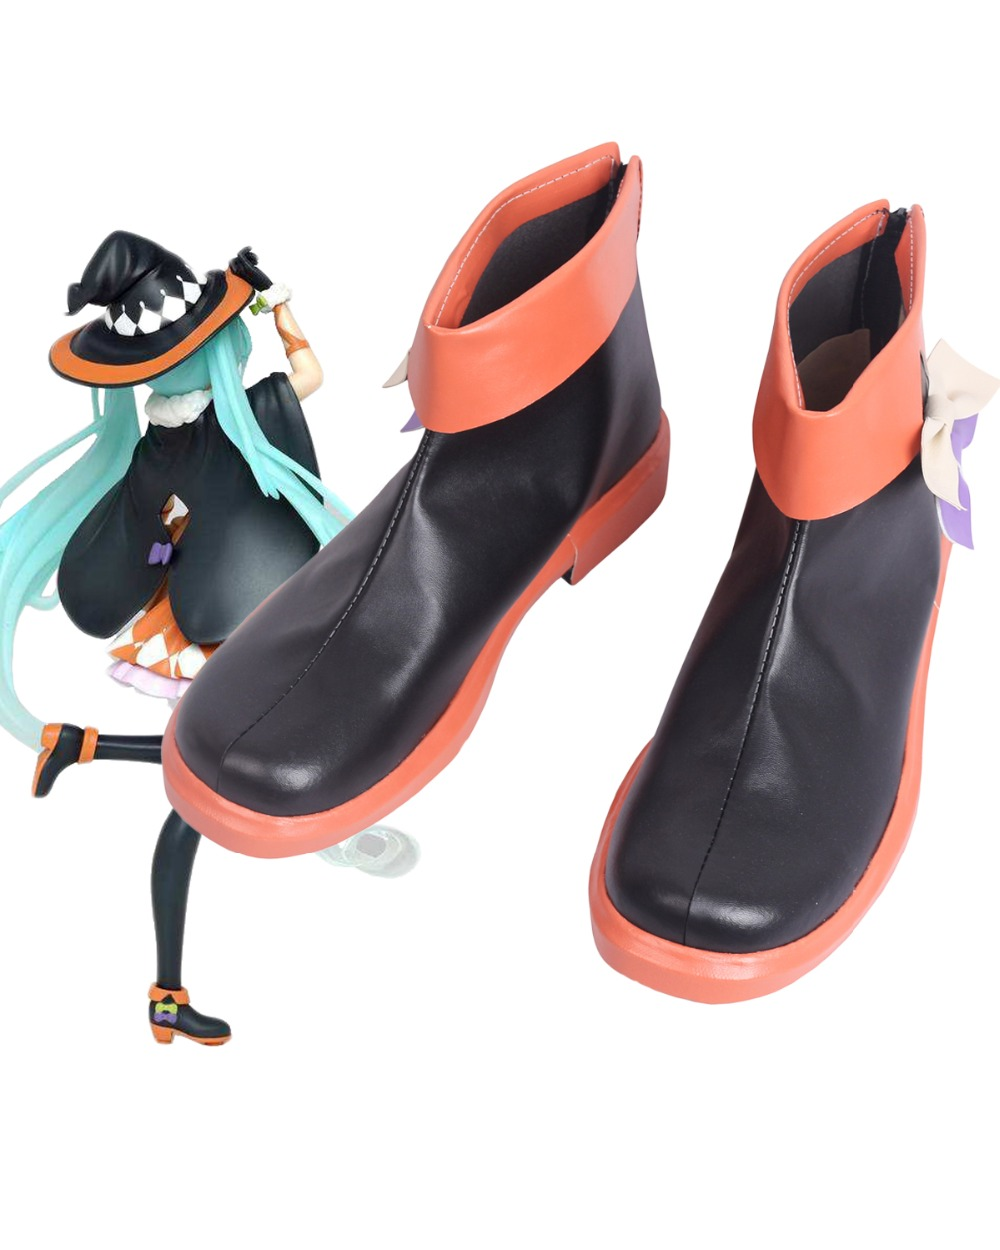 hot-vocaloid-miku-font-b-hatsune-b-font-halloween-boots-cosplay-shoes-custom-made-any-size